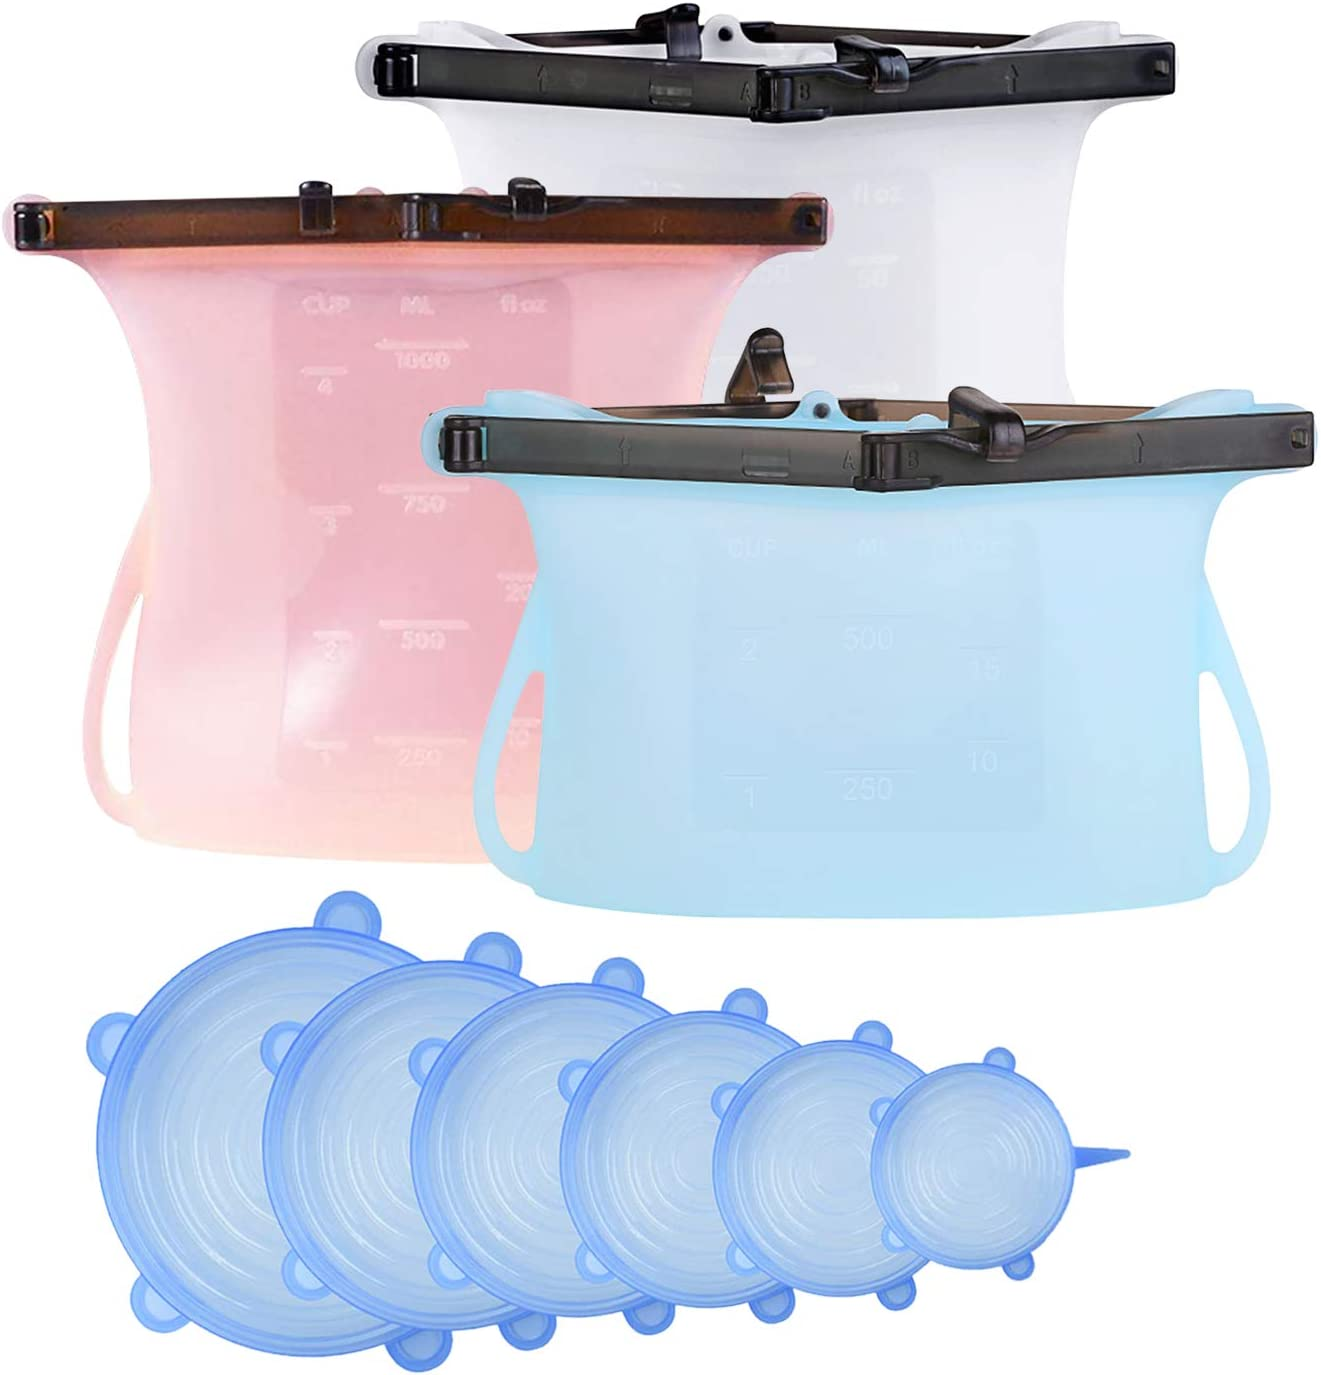 Silicone Food Containers- Food Storage Bags(3pcs)+Stretchy Container Lids (6 pcs)| Stand-Up Flat Bottom |Airtight Bags for Storage Liquid, Fruits, Meats and Vegetables | Lids- Alternative to Cling Film, Microwave & Dishwasher Safe